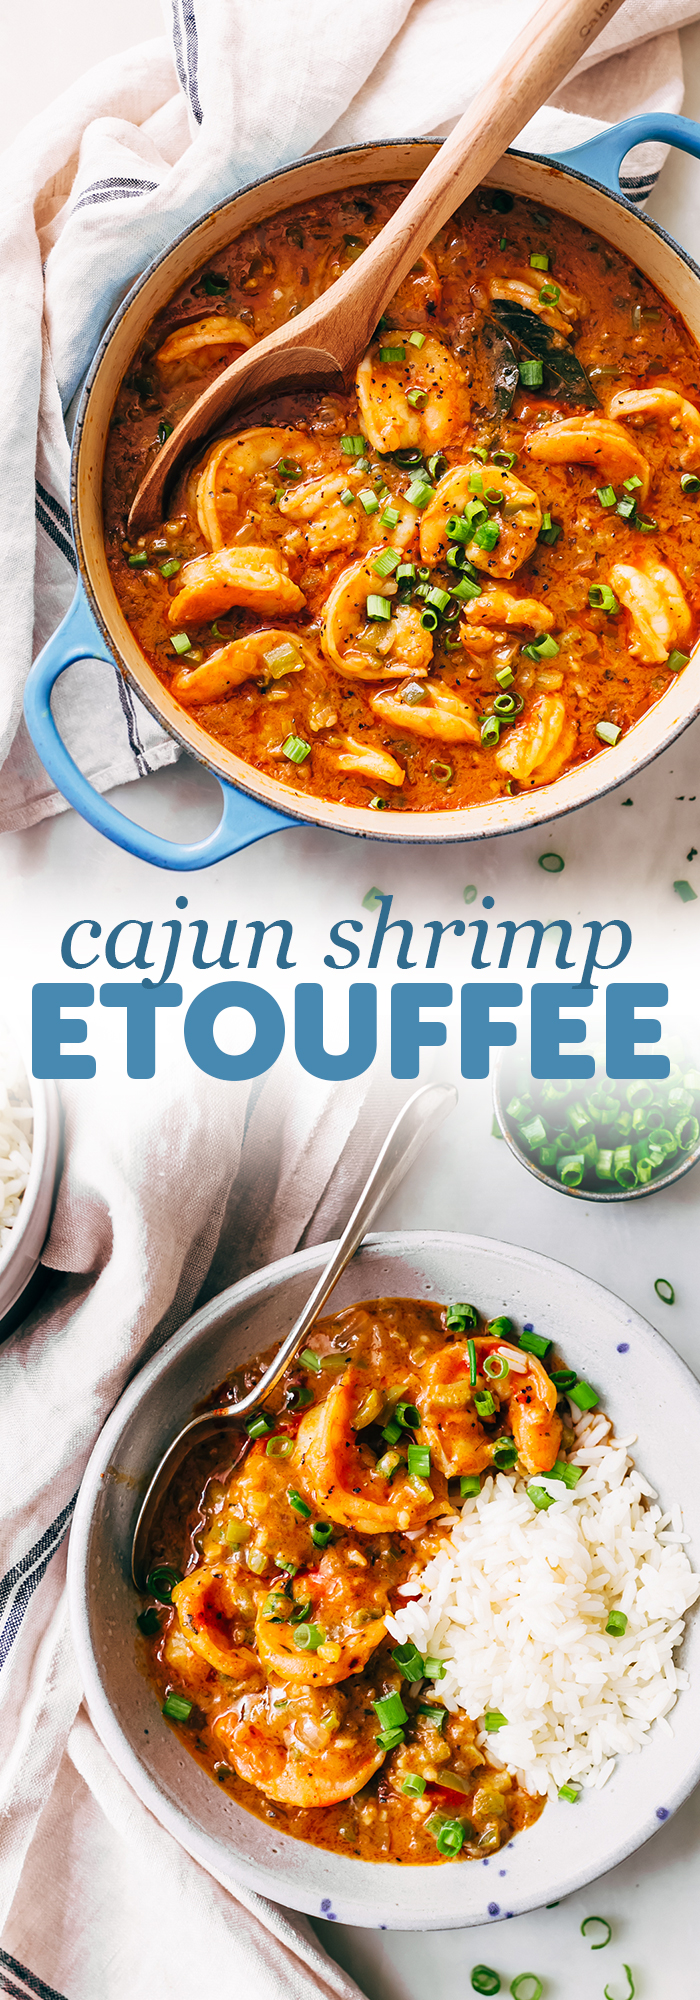 Cajun Shrimp Étouffée - learn how to make shrimp étouffée from scratch! It's hearty and delicious! #comfortfood #dinnerecipes #cajun #shrimpetouffee #etouffee | Littlespicejar.com